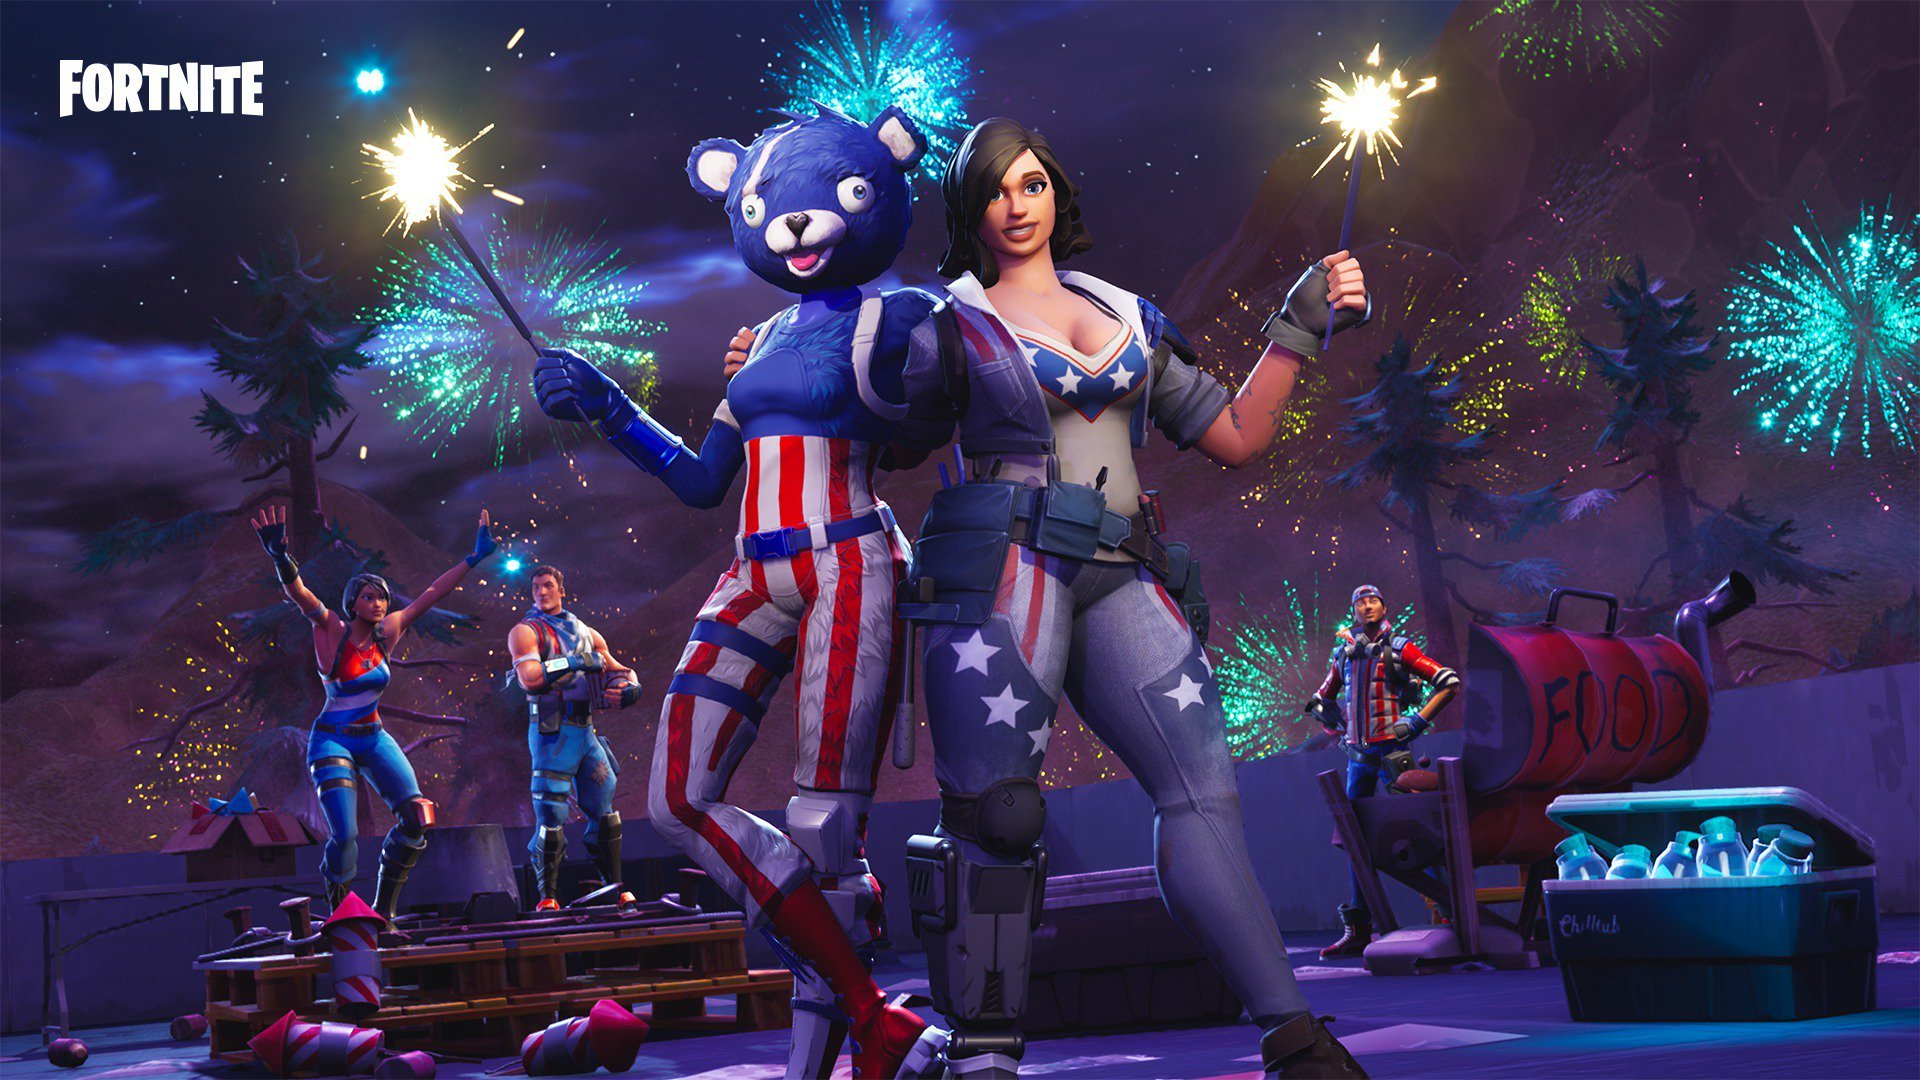 Possible live fortnite fireworks event for 4th july - Fortnite save the world wallpaper ...